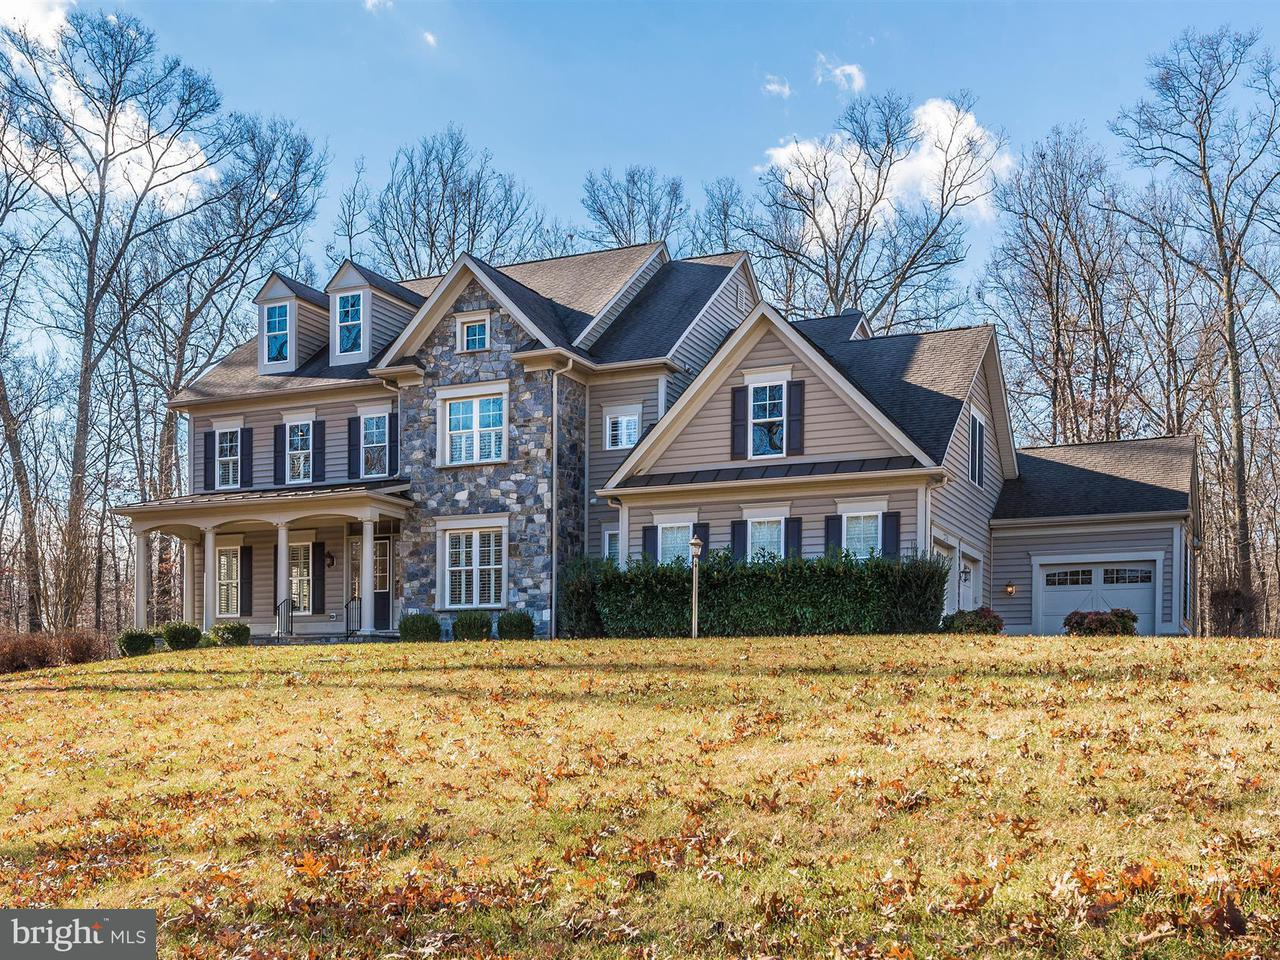 Single Family Home for Sale at 10124 Sycamore Hollow Lane 10124 Sycamore Hollow Lane Germantown, Maryland 20876 United States